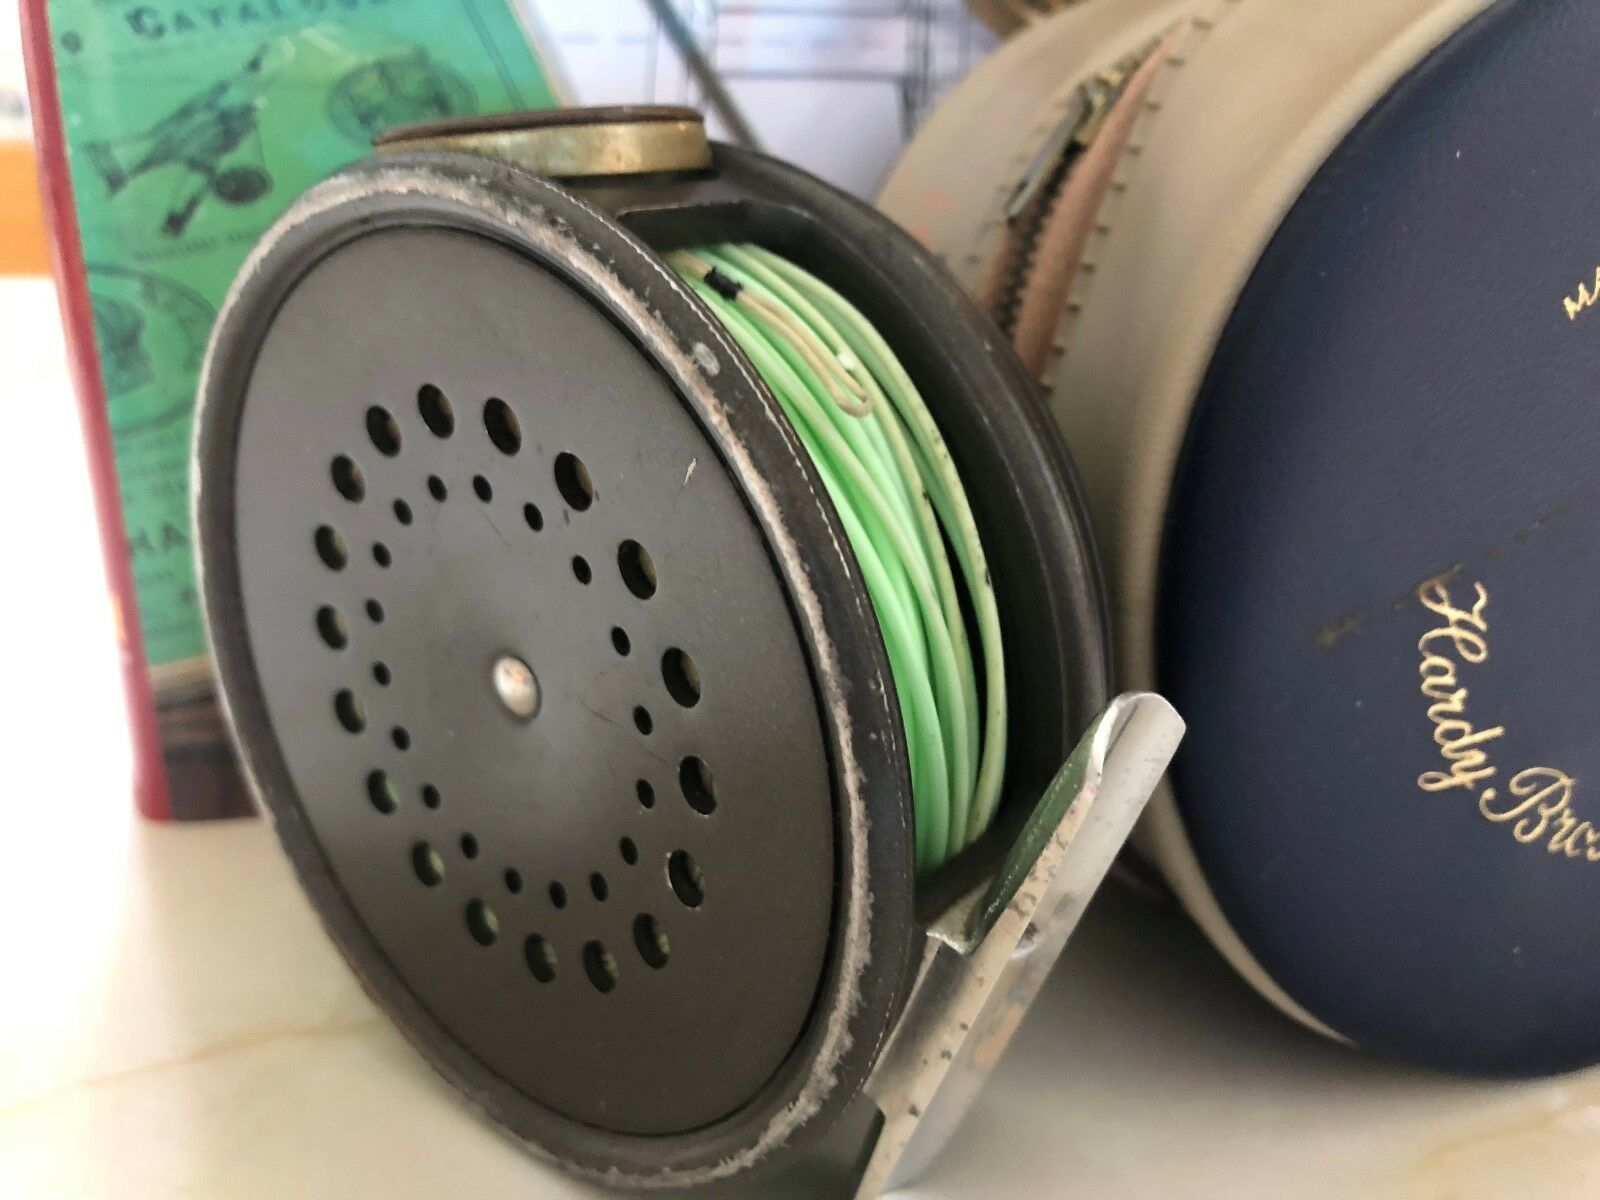 Hardy Perfect 3 5/8 Inch R H H H W Trout Fly Reel with Line Guard Fly Line & Case bcaaf8